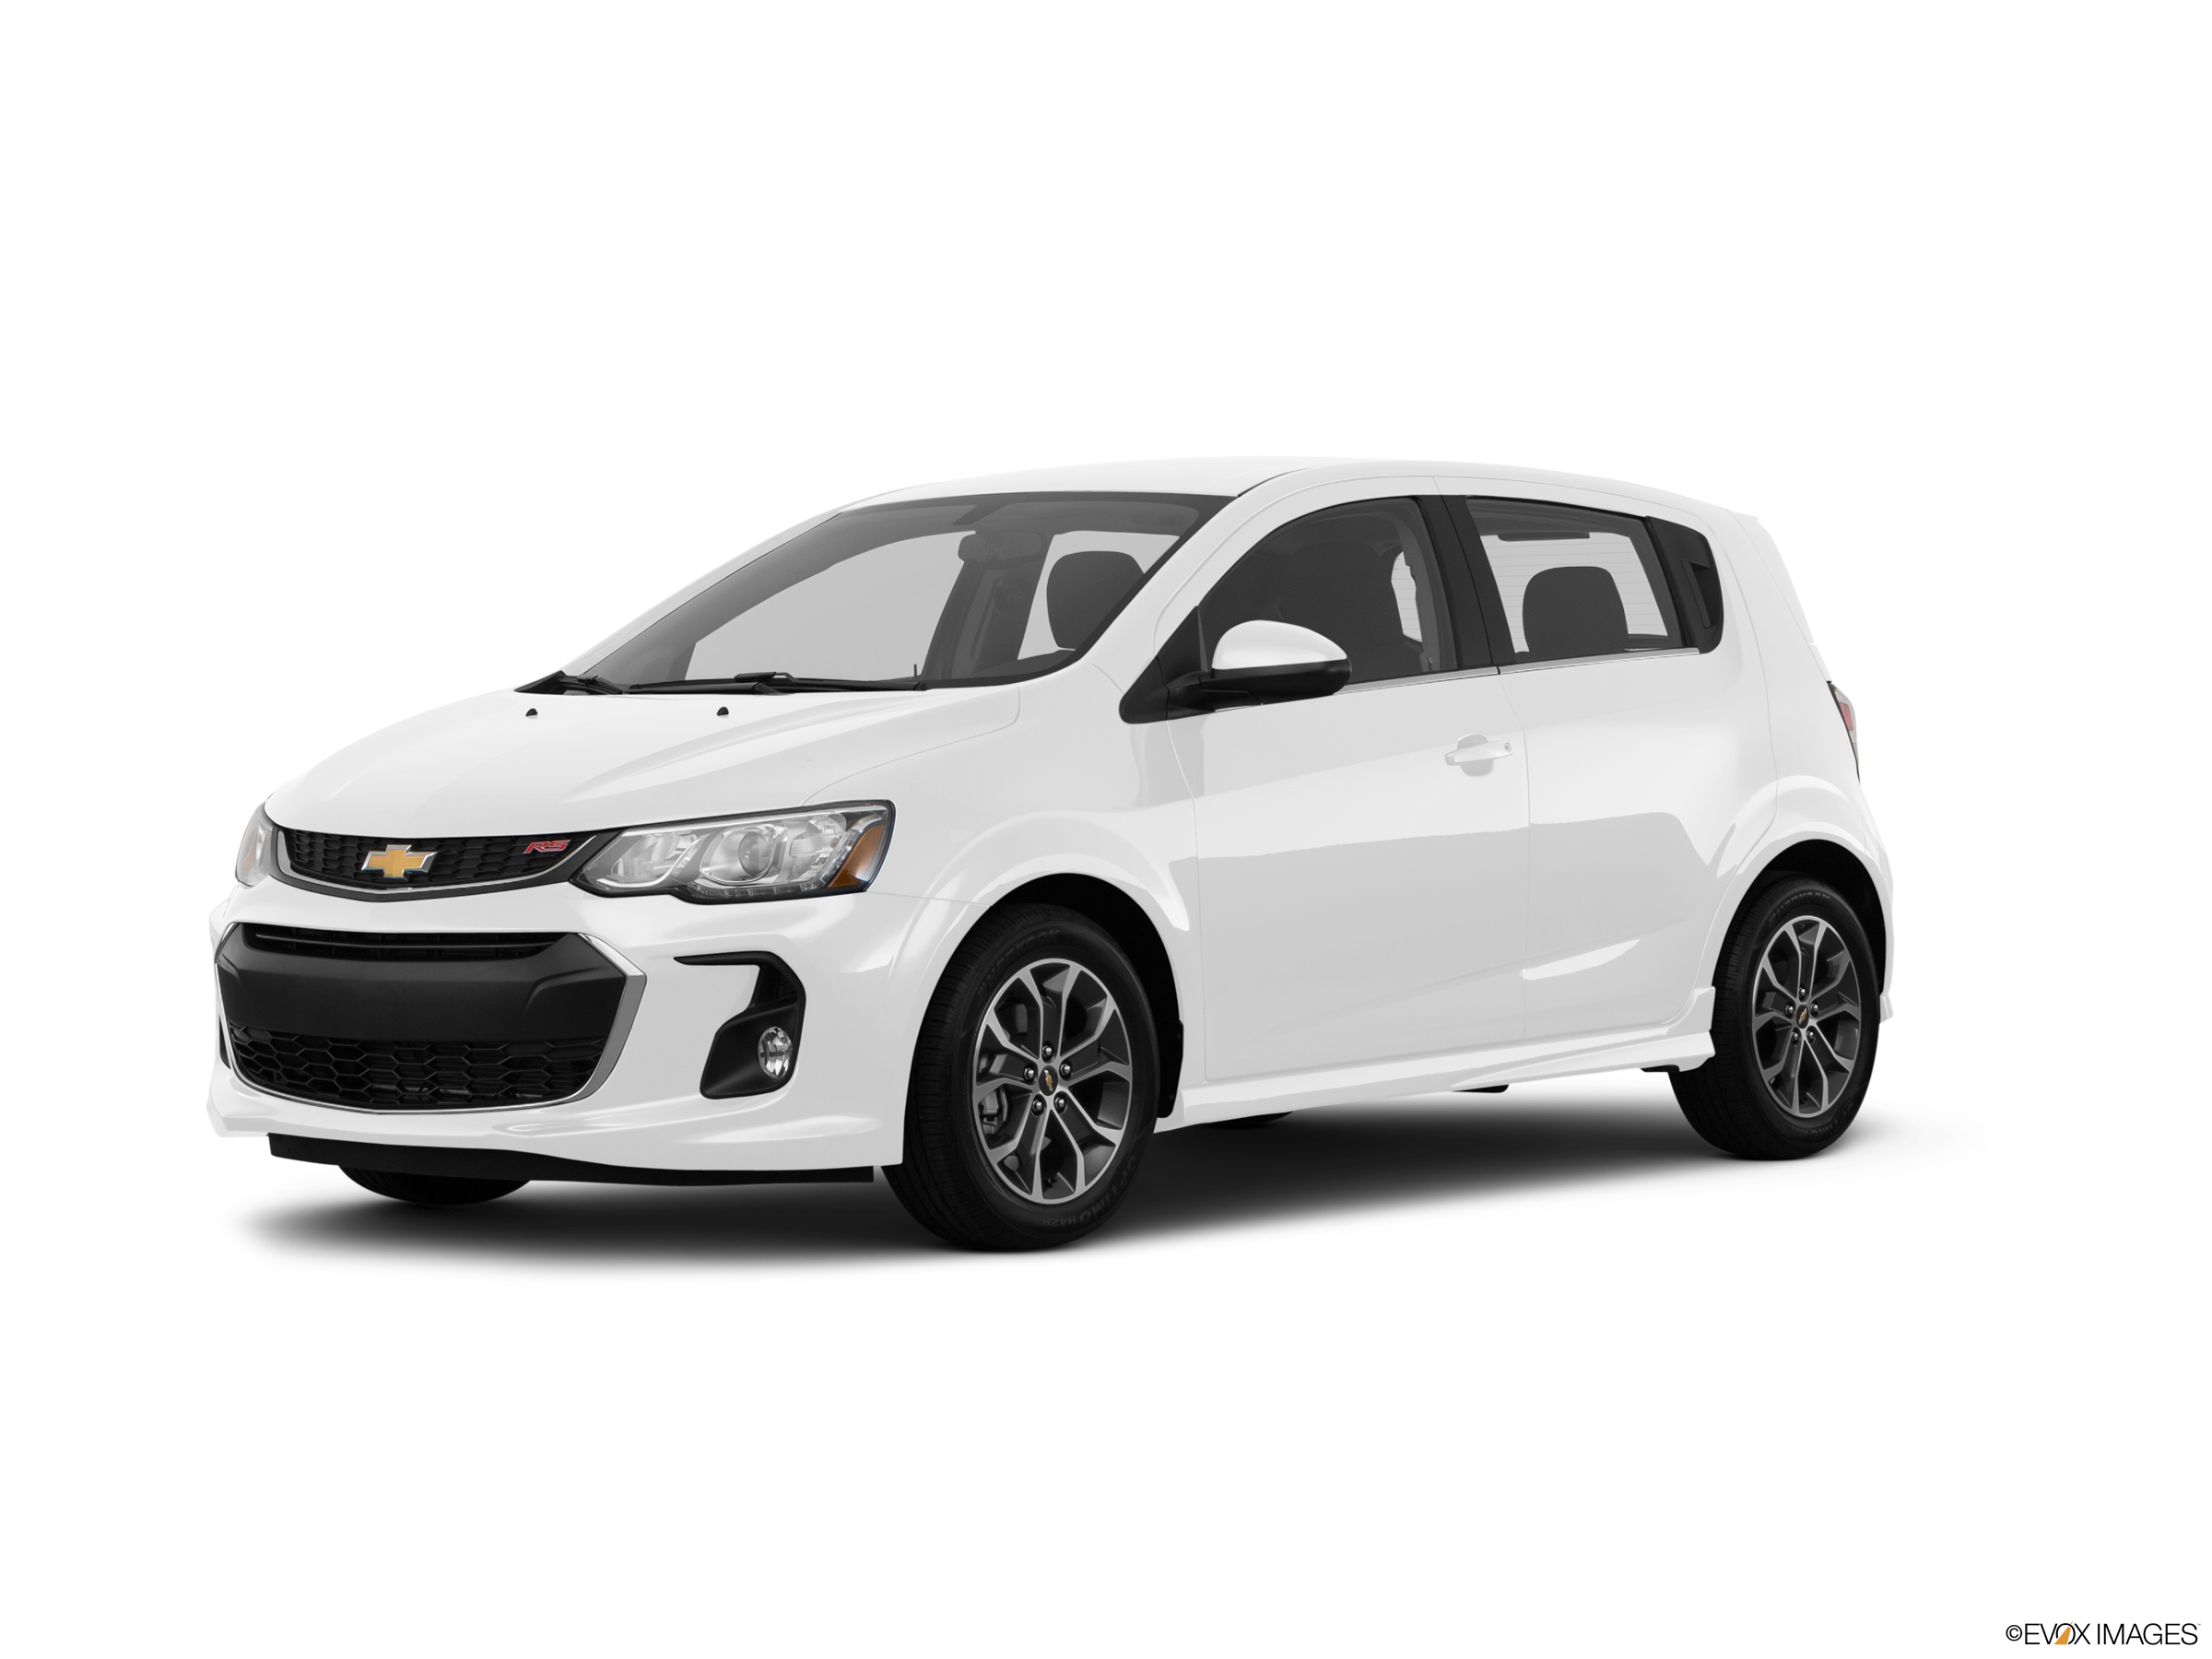 Most Popular Hatchbacks of 2018 - 2018 Chevrolet Sonic